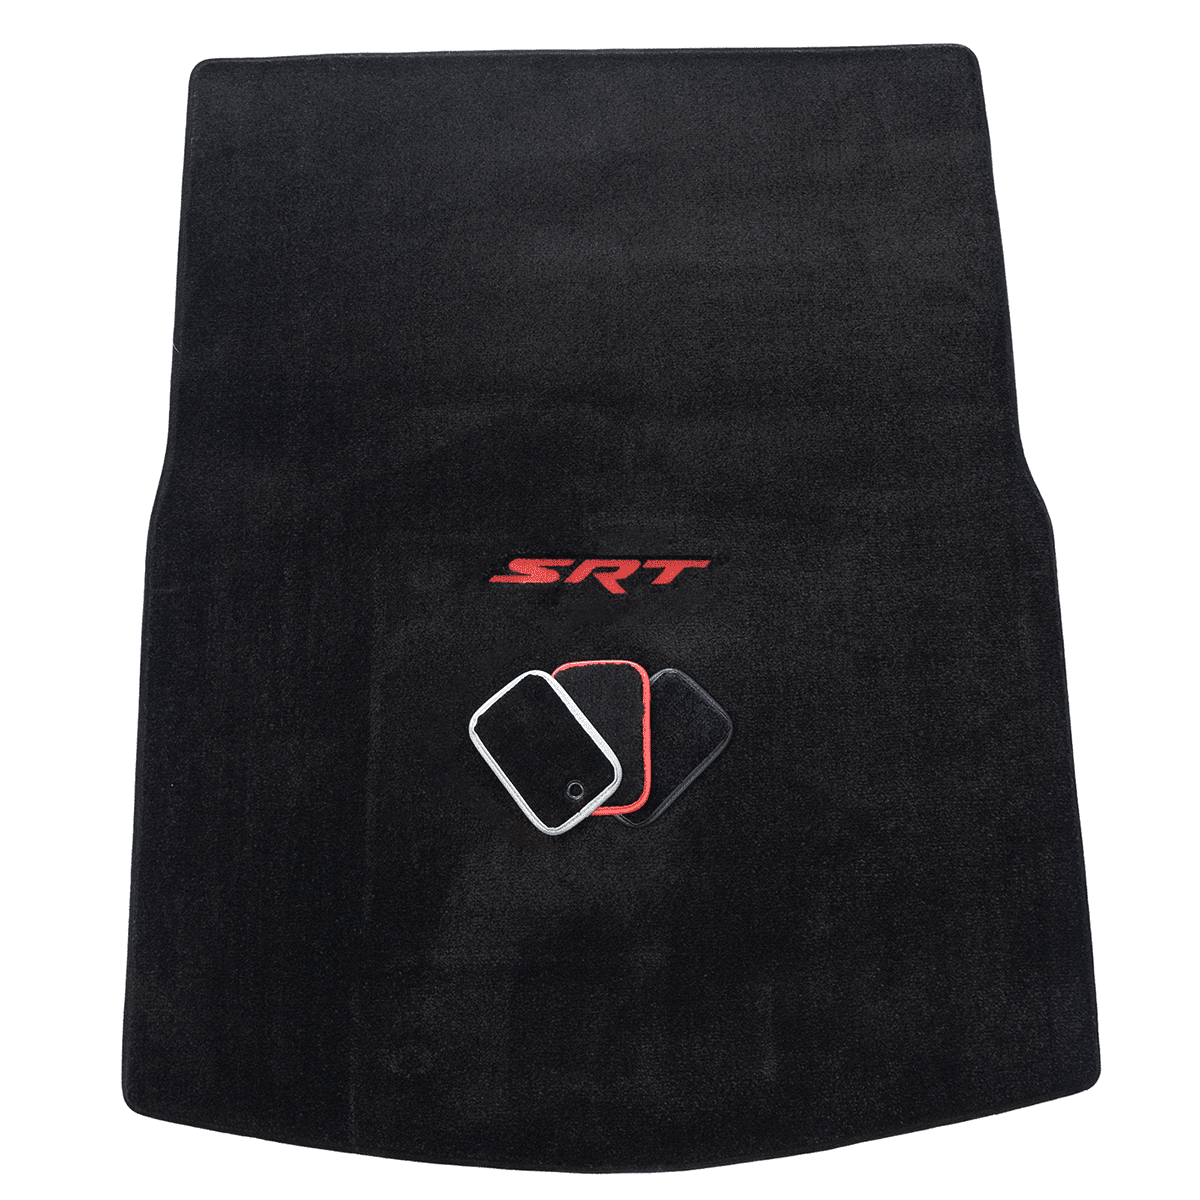 Dodge Durango Srt Floor Mats Set